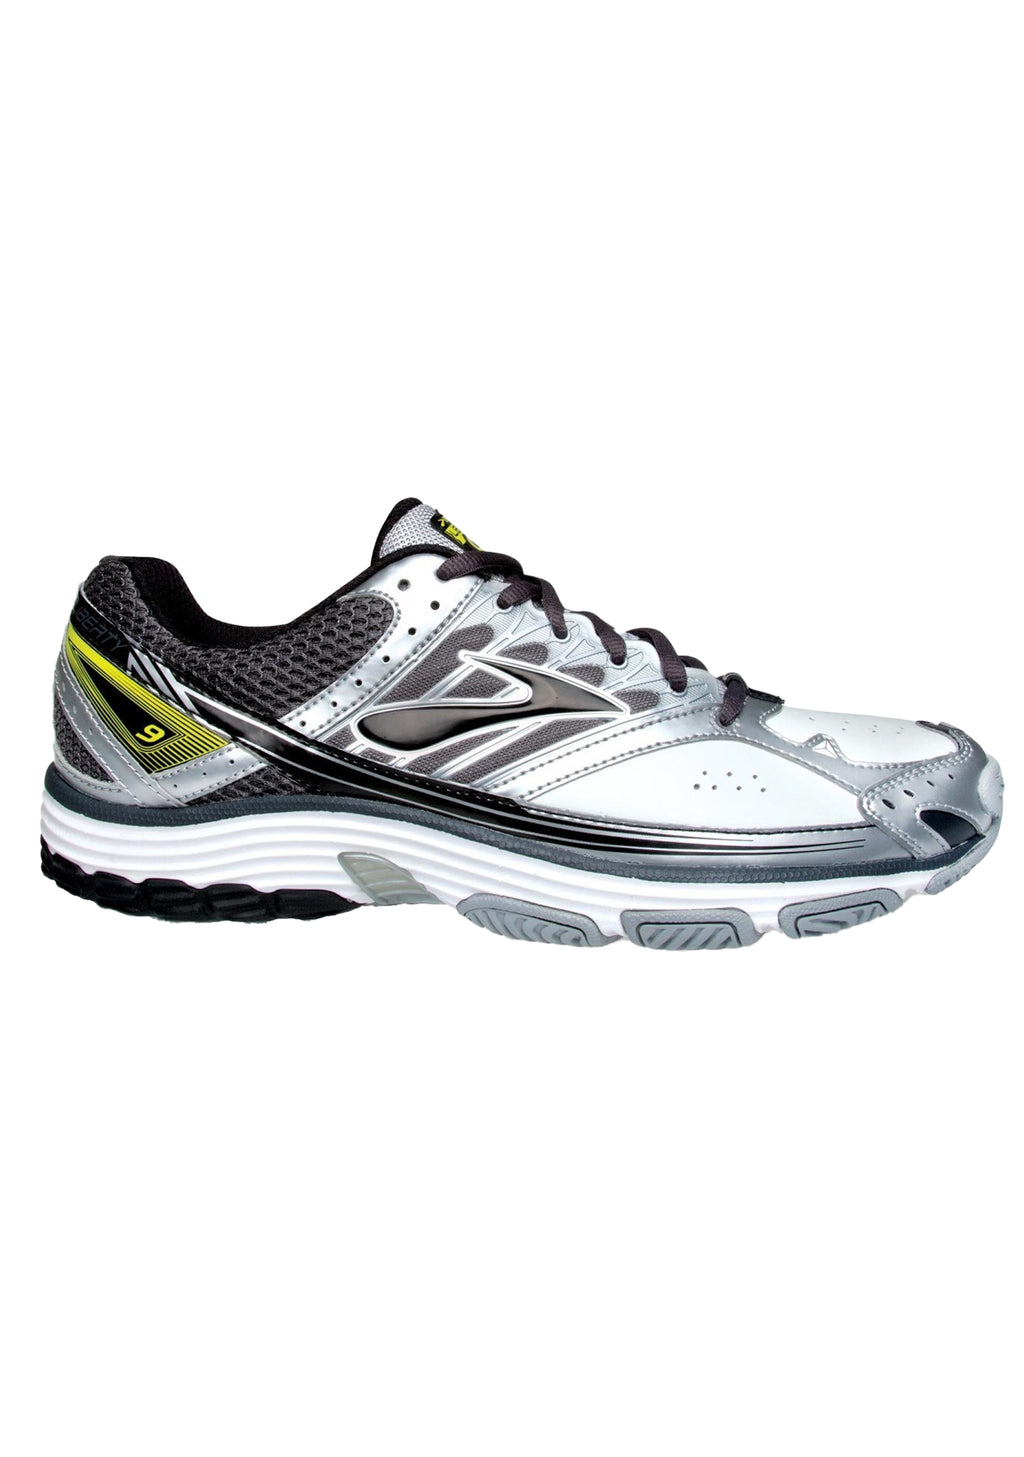 BROOKS MENS LIBERTY 9 LEATHER (D WIDTH) <br> 110220 1D 043